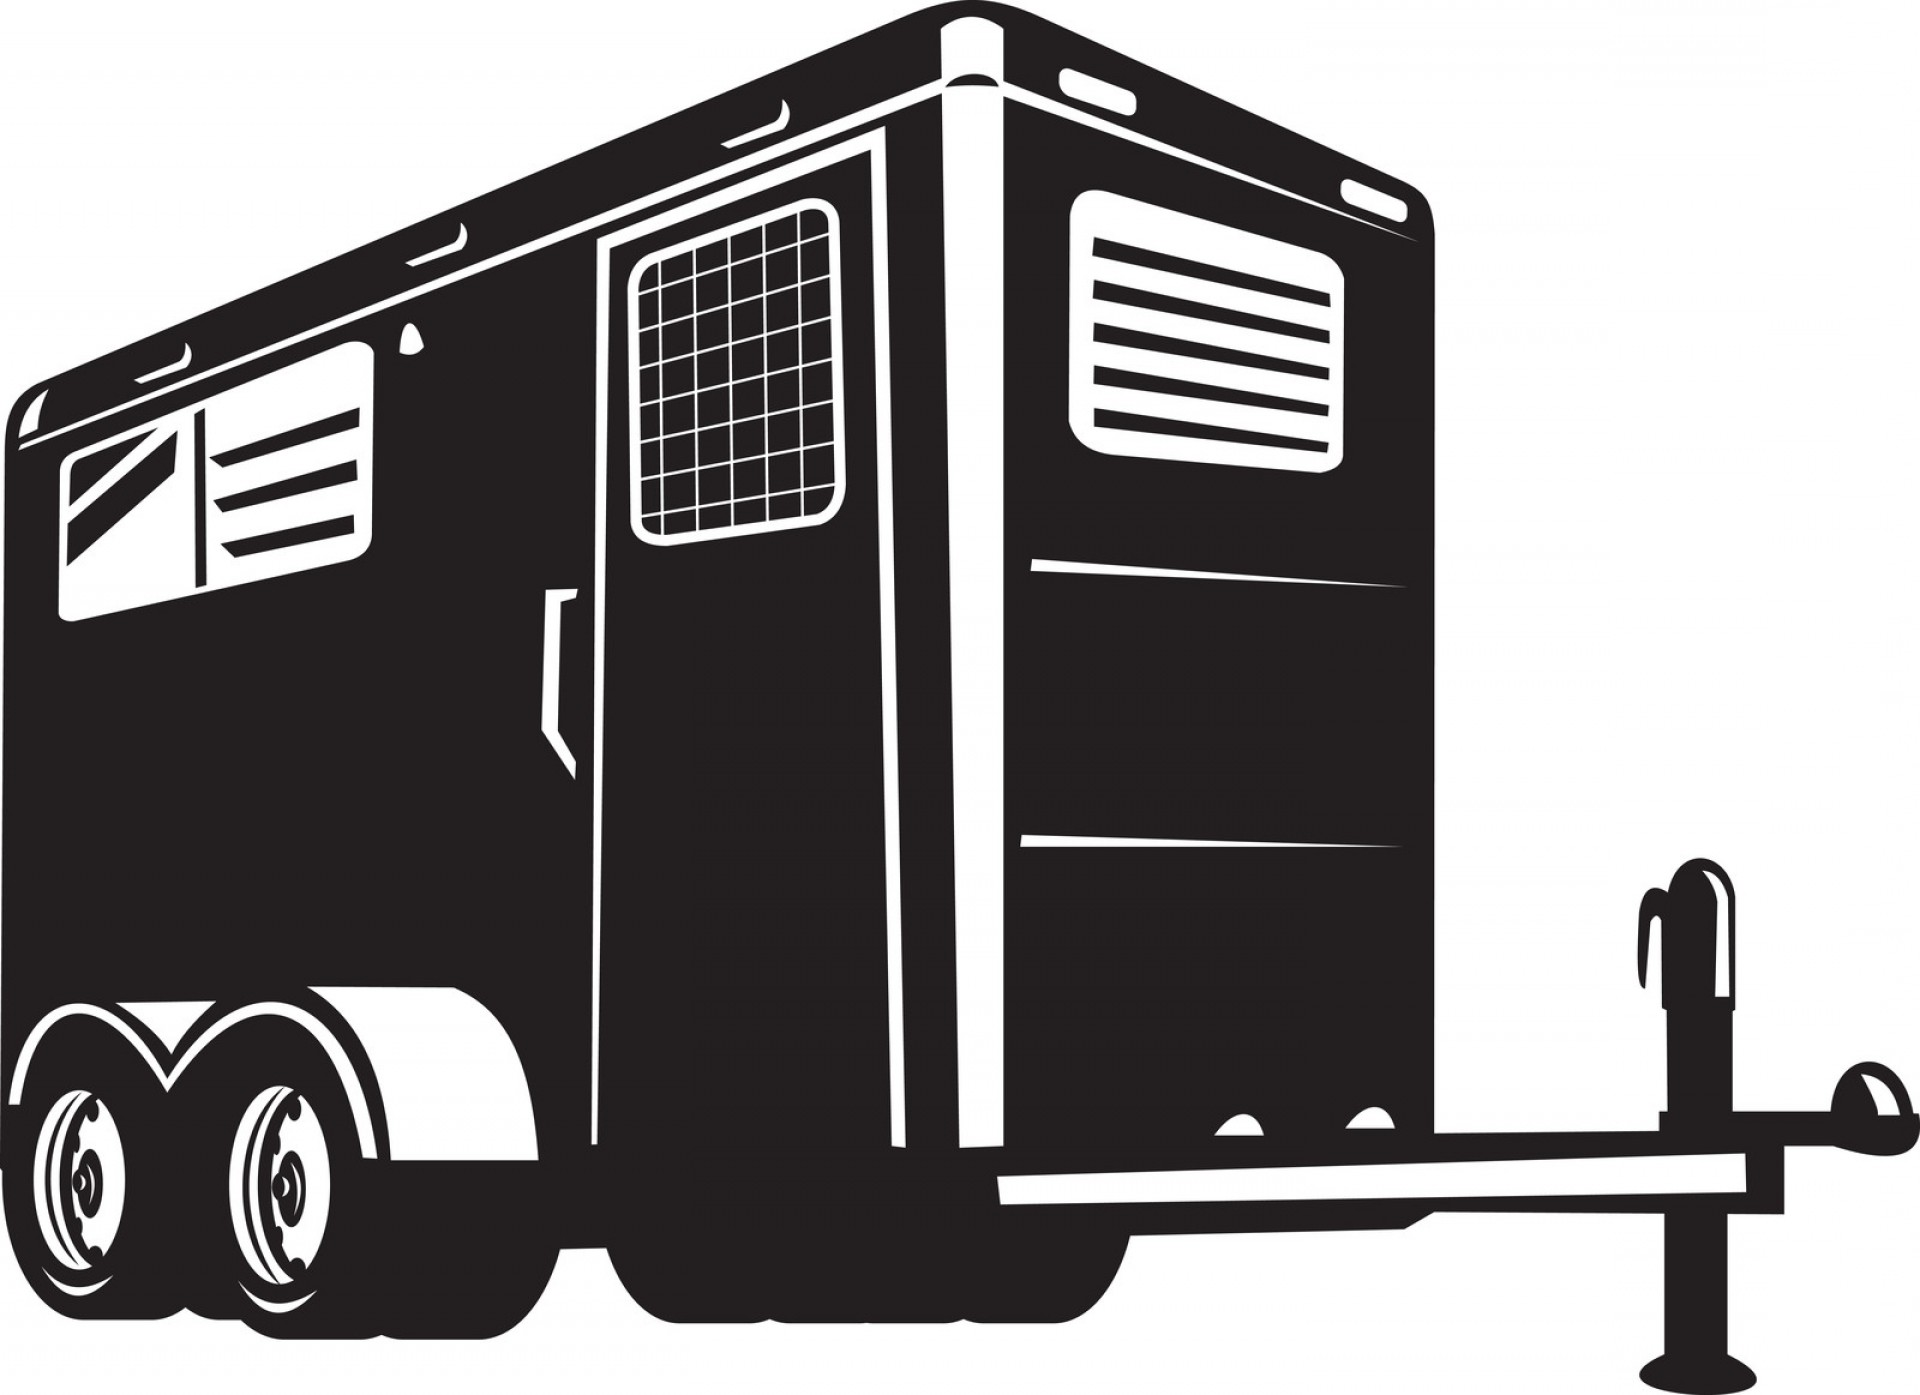 U-Haul Logo Vector Clip Art: Reasons To Rent An Enclosed U Haul Trailer When Moving Great Day Clip Art